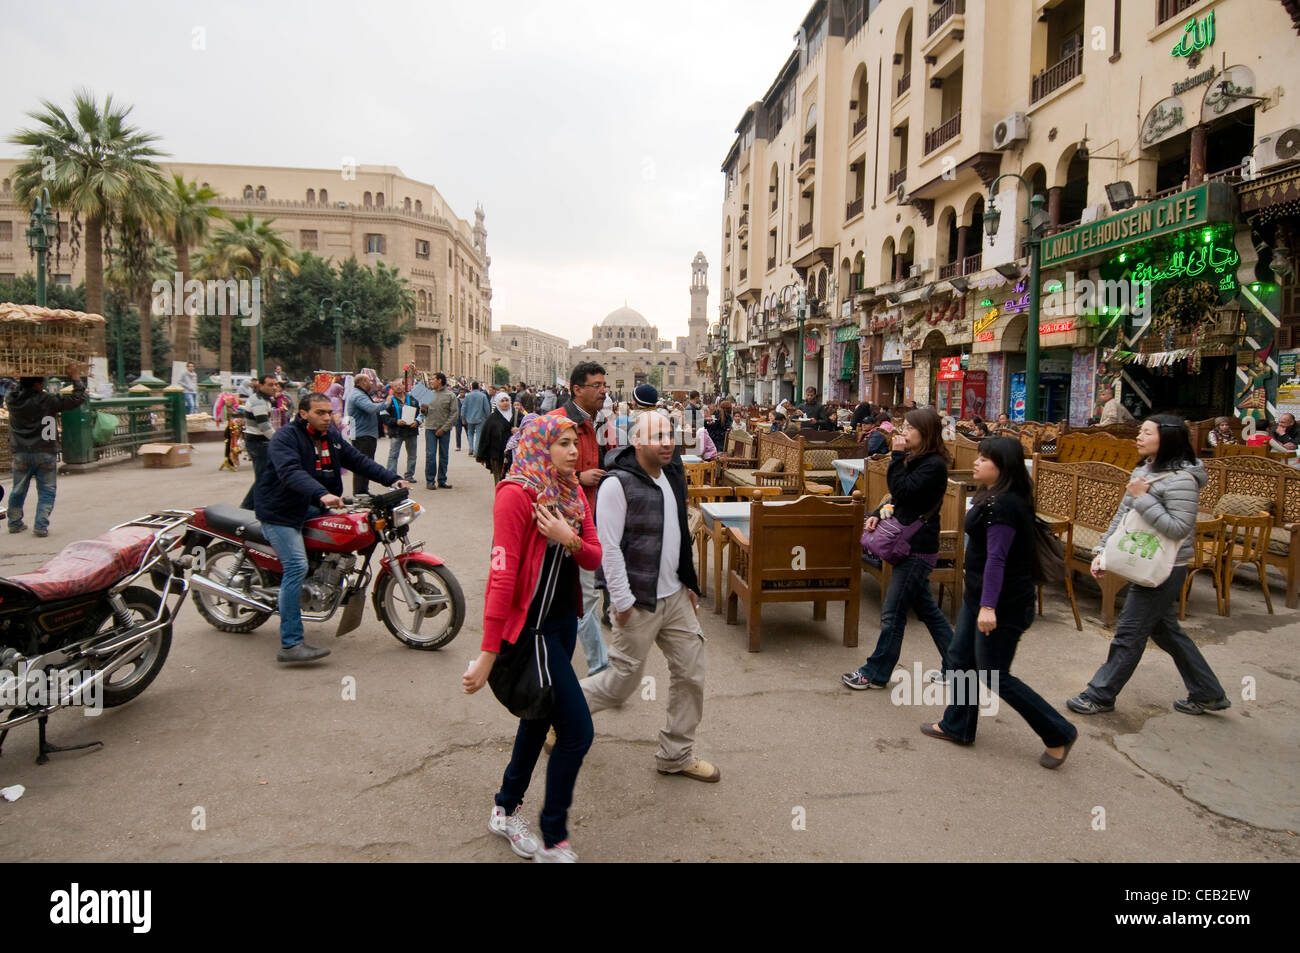 Cafes at entrance of Khan El Khalili market Old Cairo Egypt - Stock Image